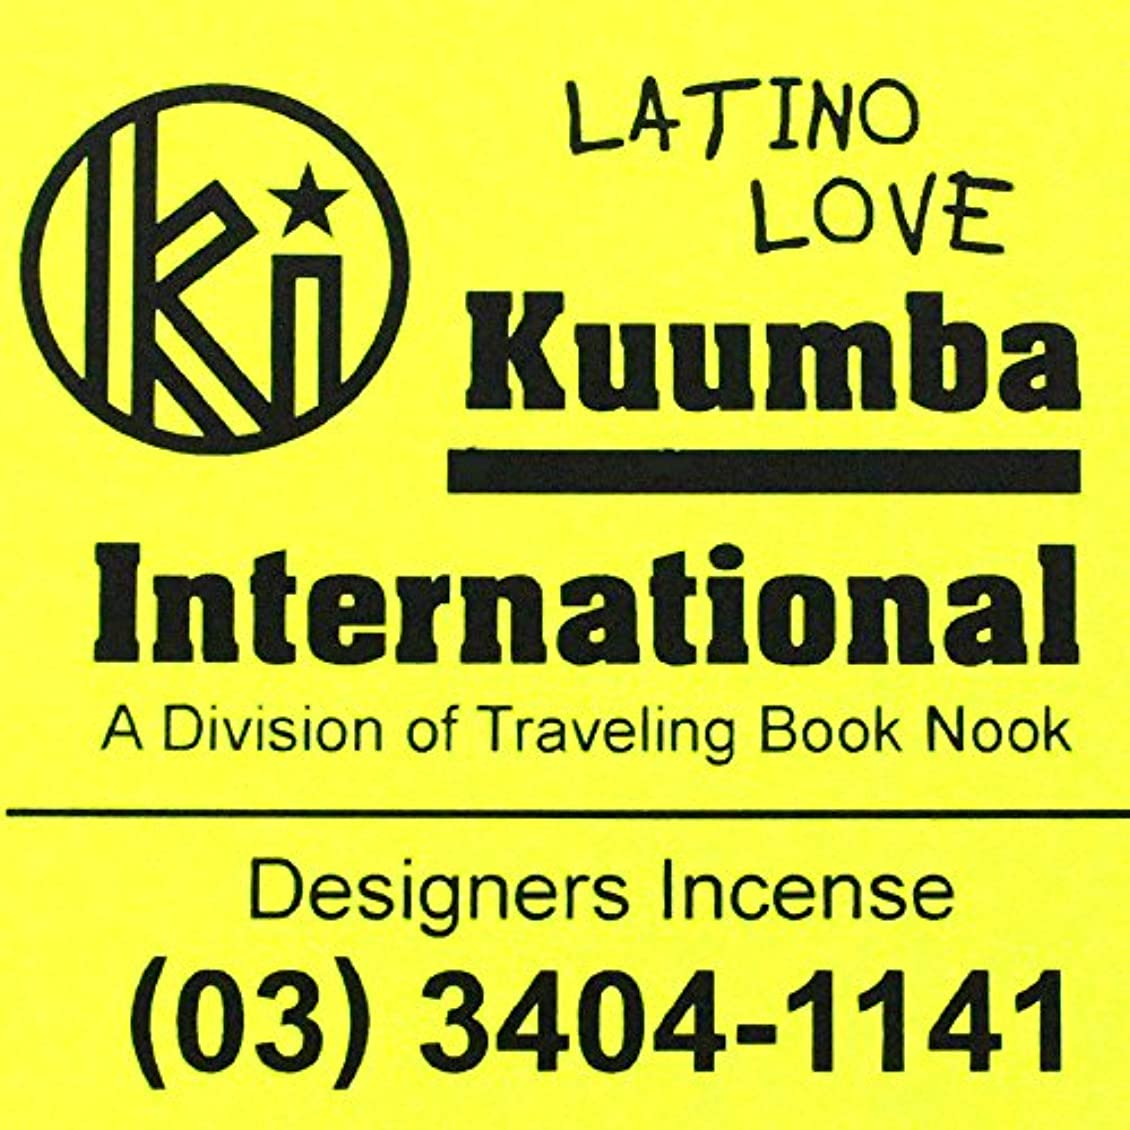 ボックス平和な悲鳴(クンバ) KUUMBA『incense』(LATINO LOVE) (Regular size)